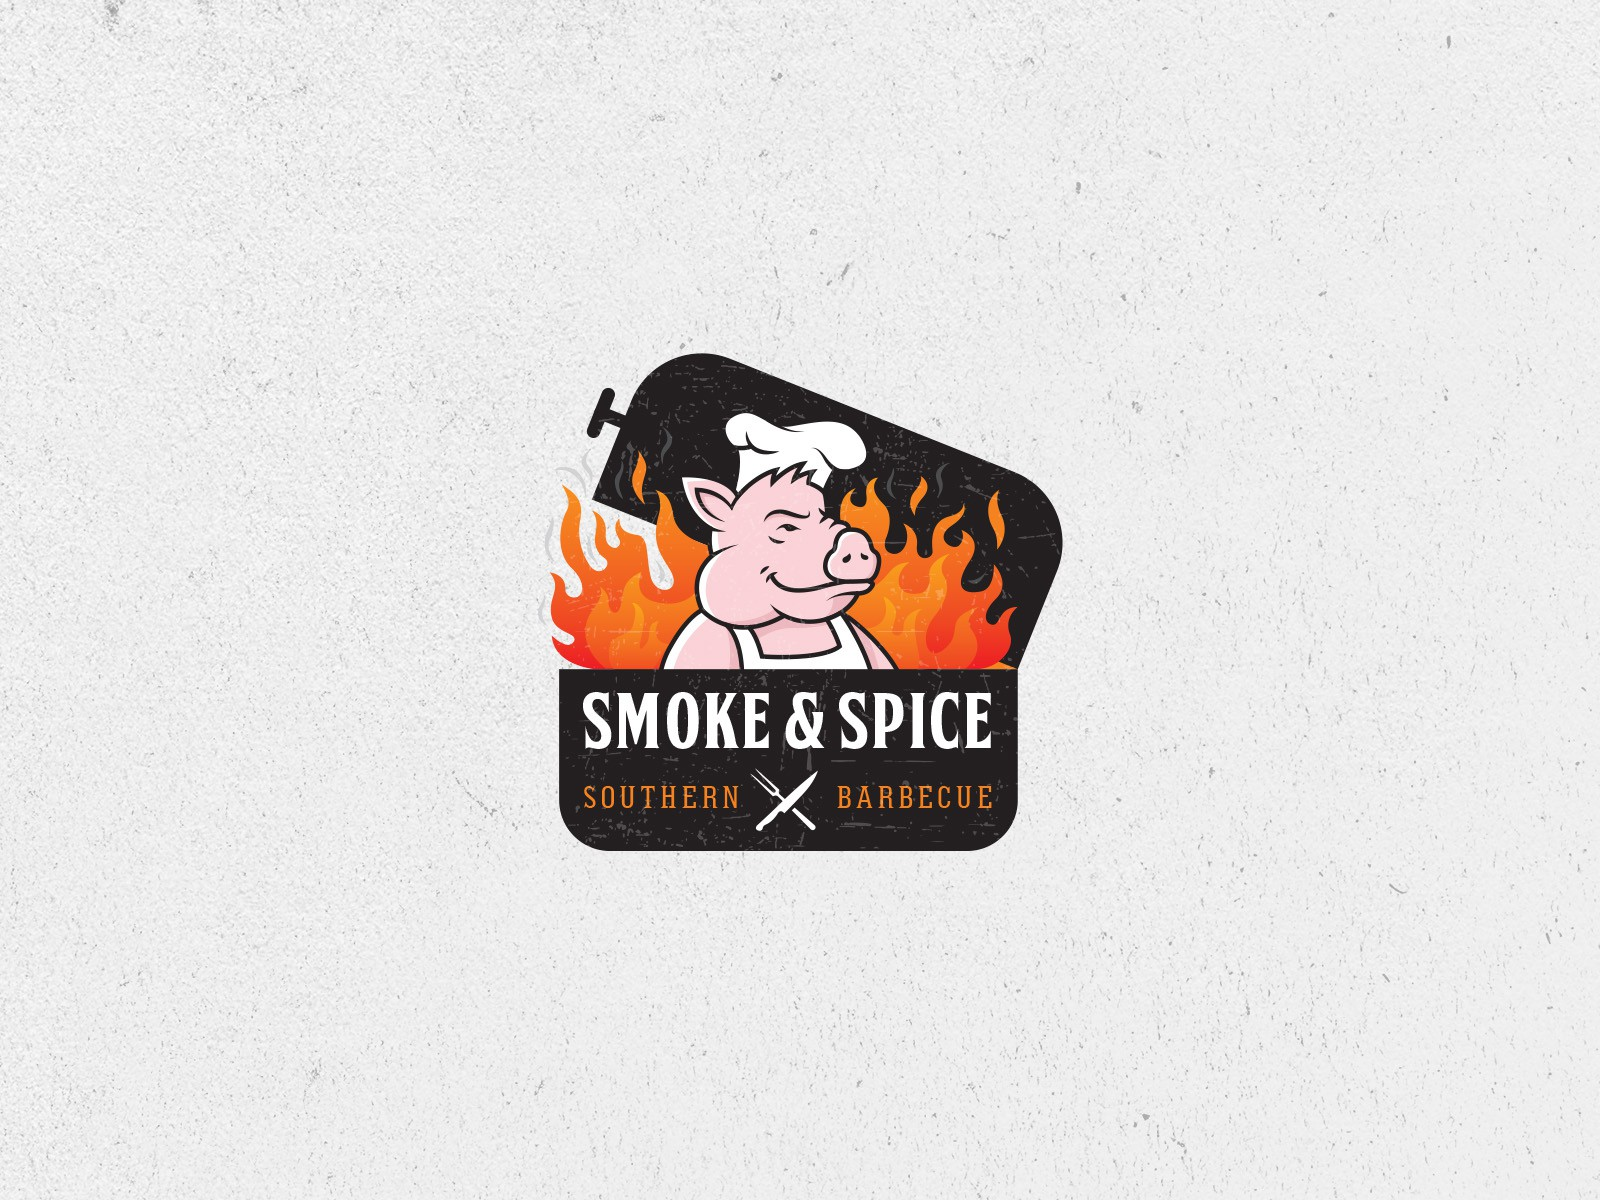 Smoke & Spice Southern BBQ Restaurant looking for fun, modern and playful new logo!